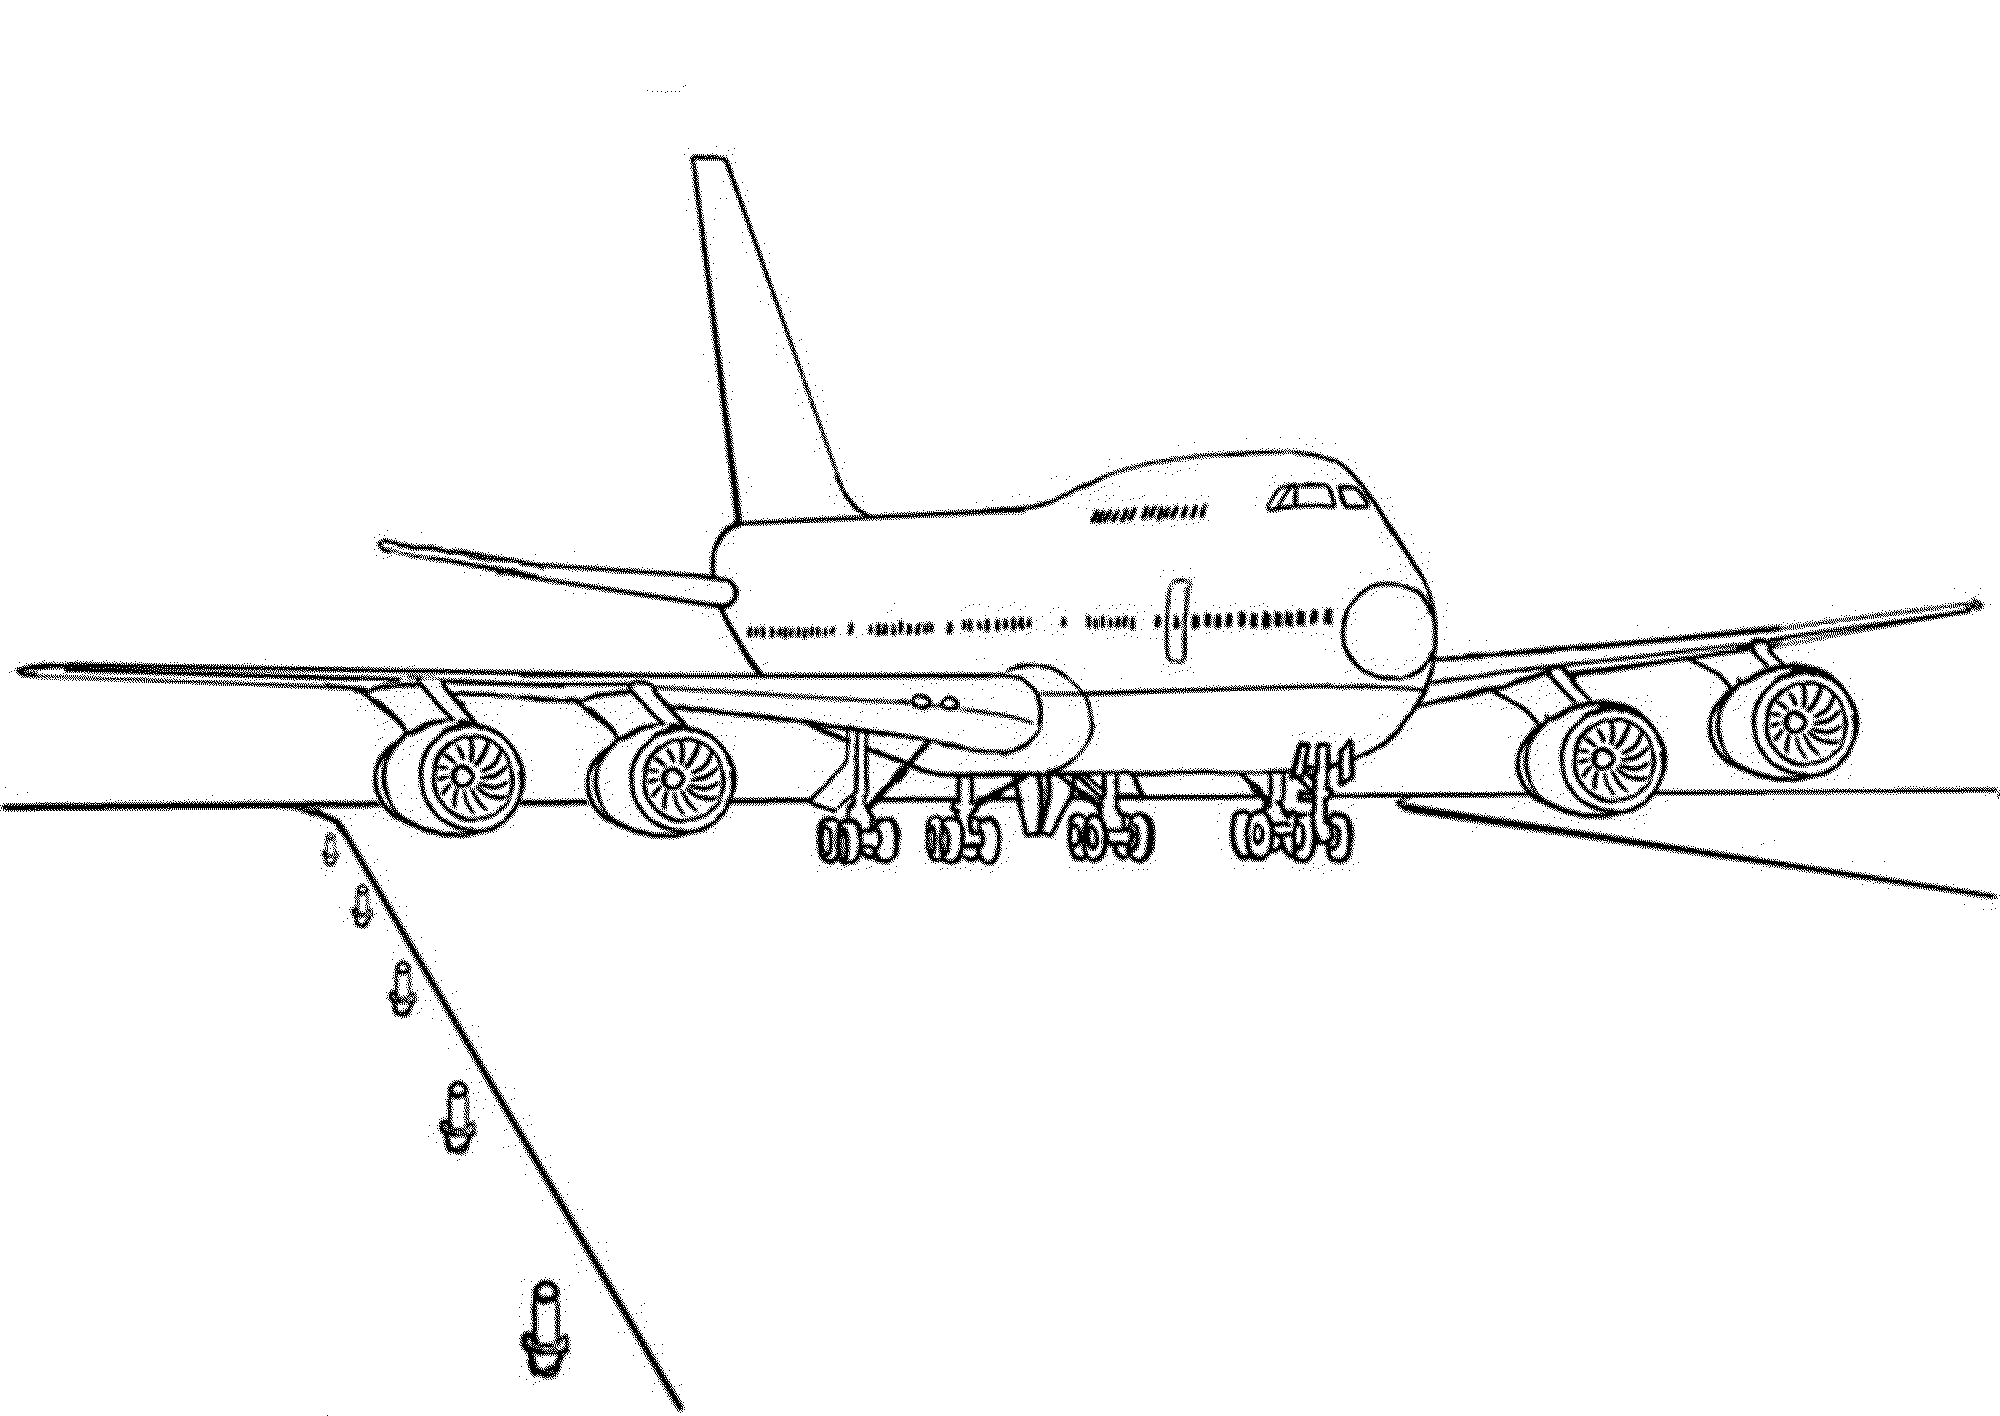 Boing 747 Landing Coloring Page Airplane Coloring Pages Kids Printable Coloring Pages Online Coloring Pages